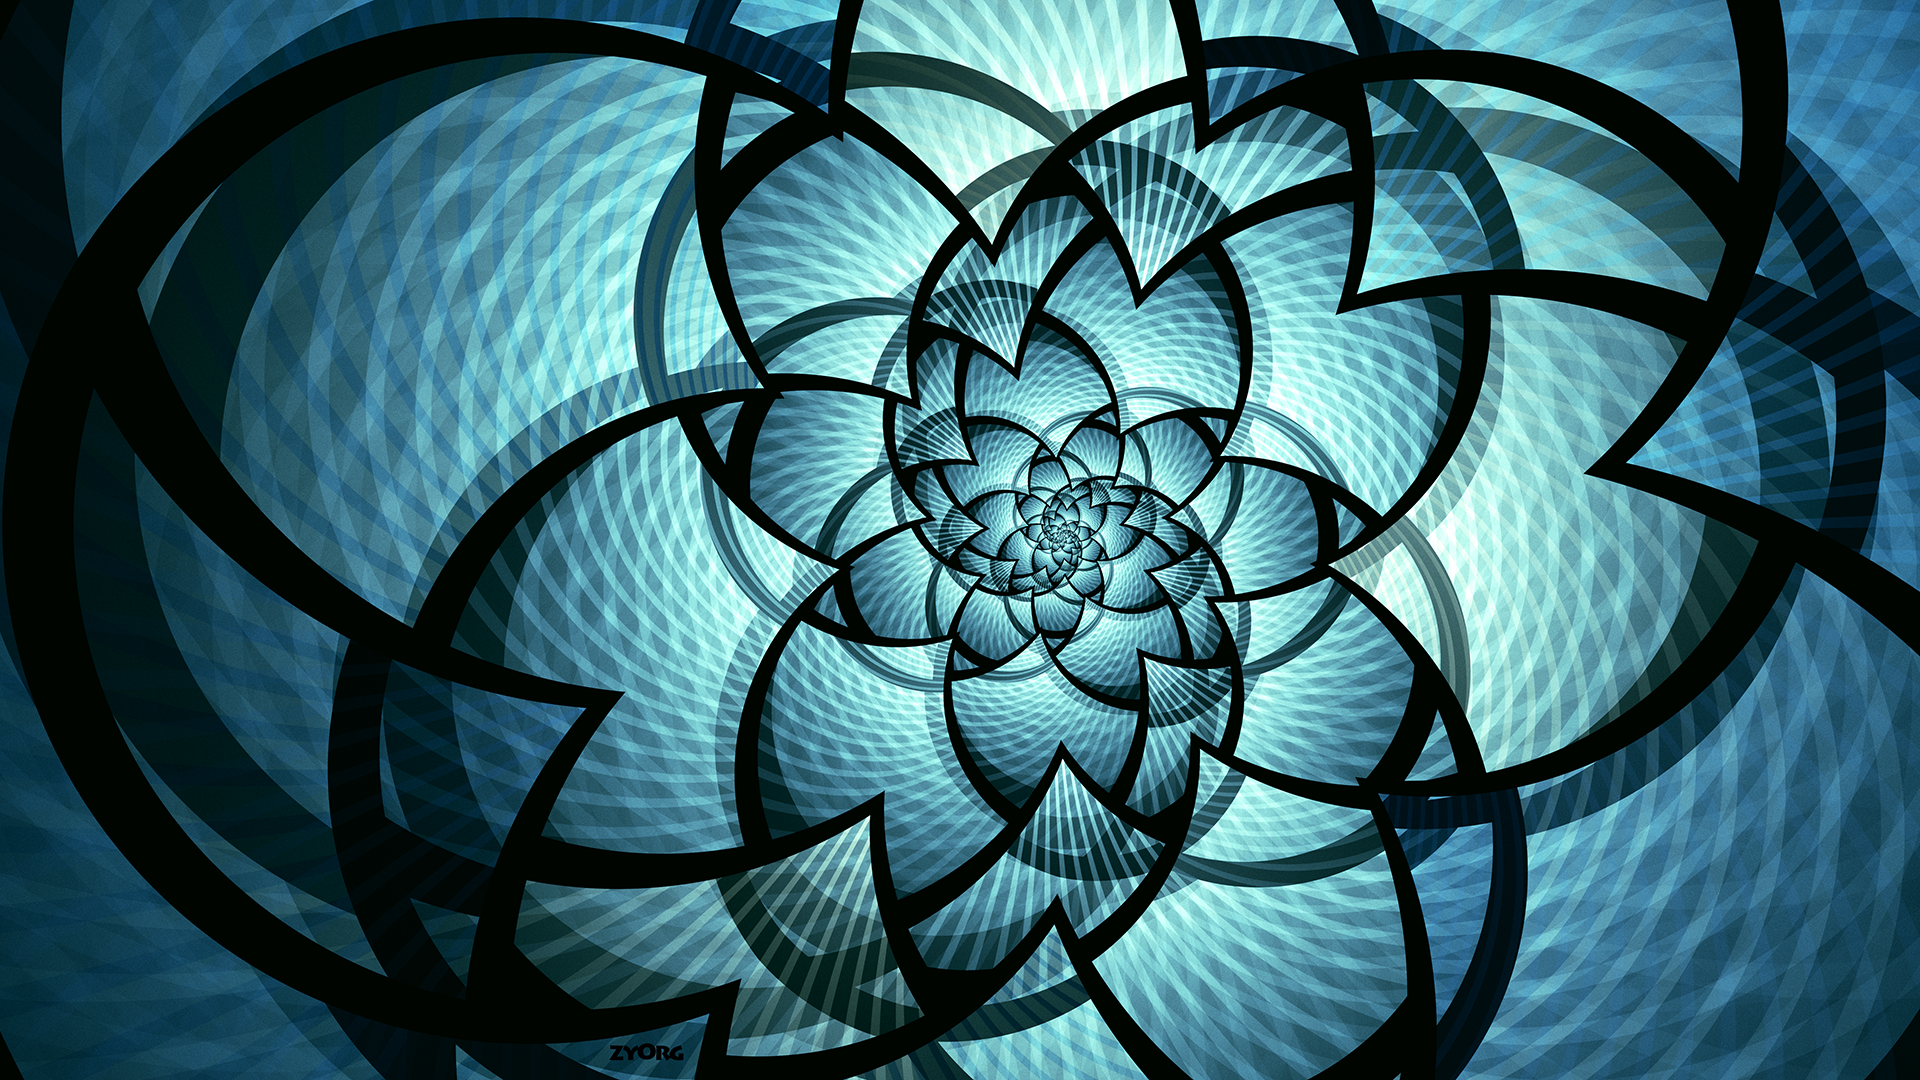 Hd Fractals Wallpapers 1080p: Fractal Full HD Wallpaper And Background Image